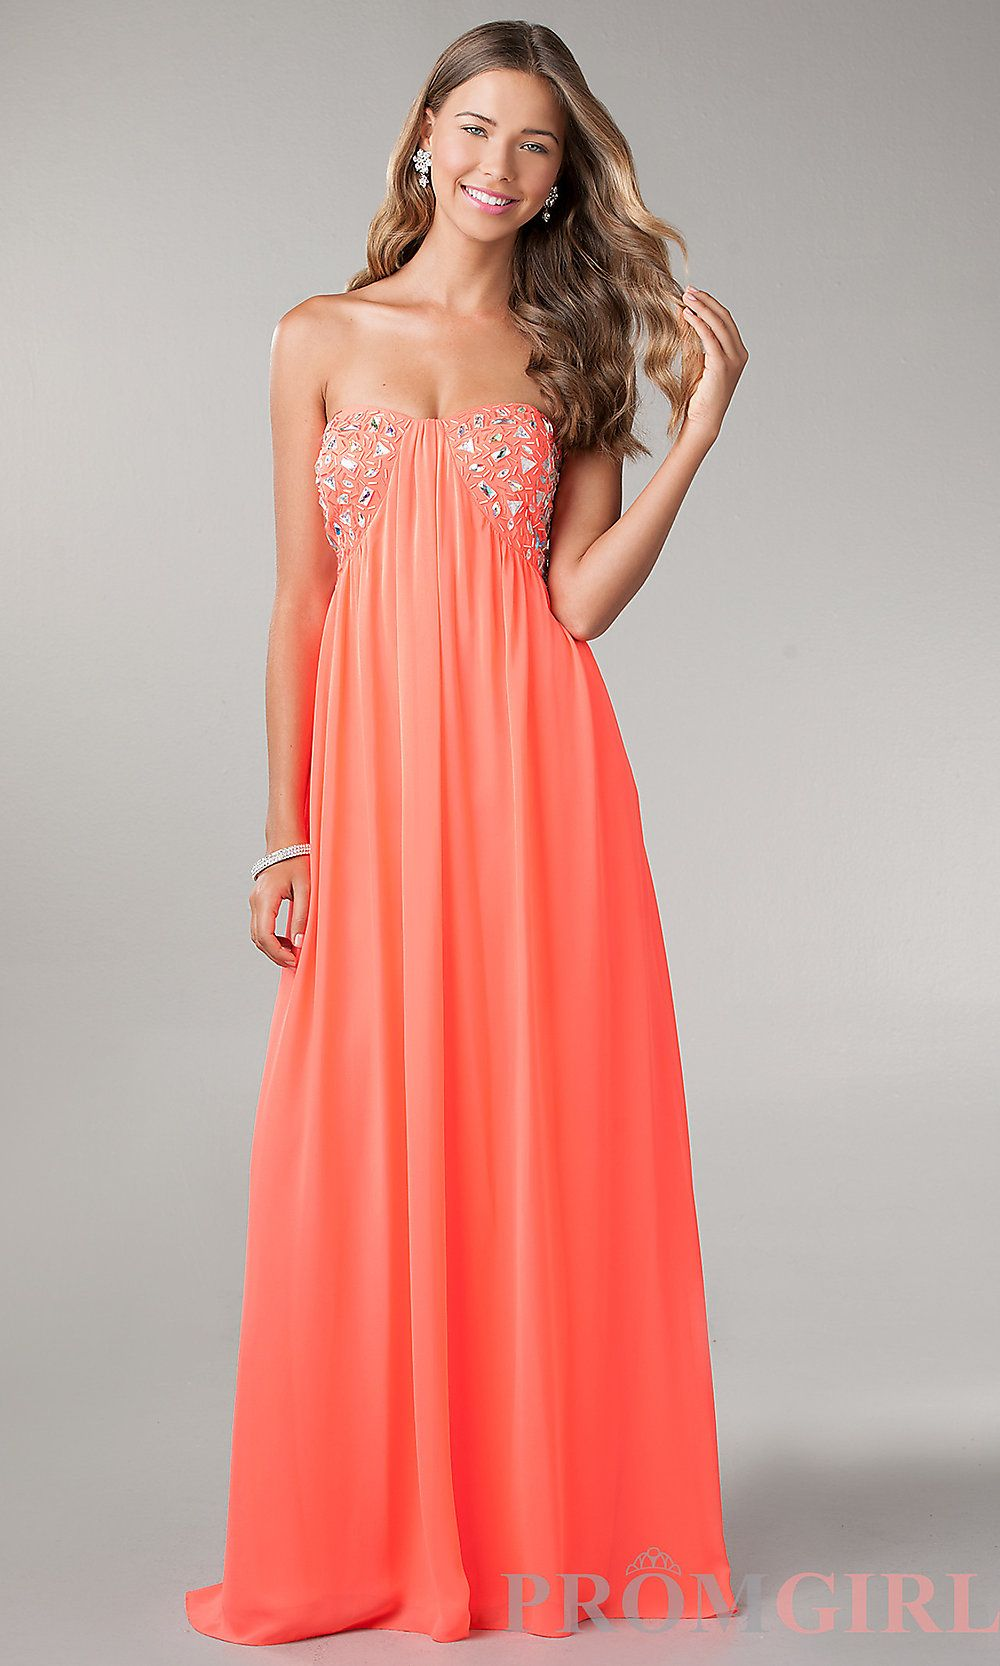 Red prom strapless dress tumblr exclusive photo